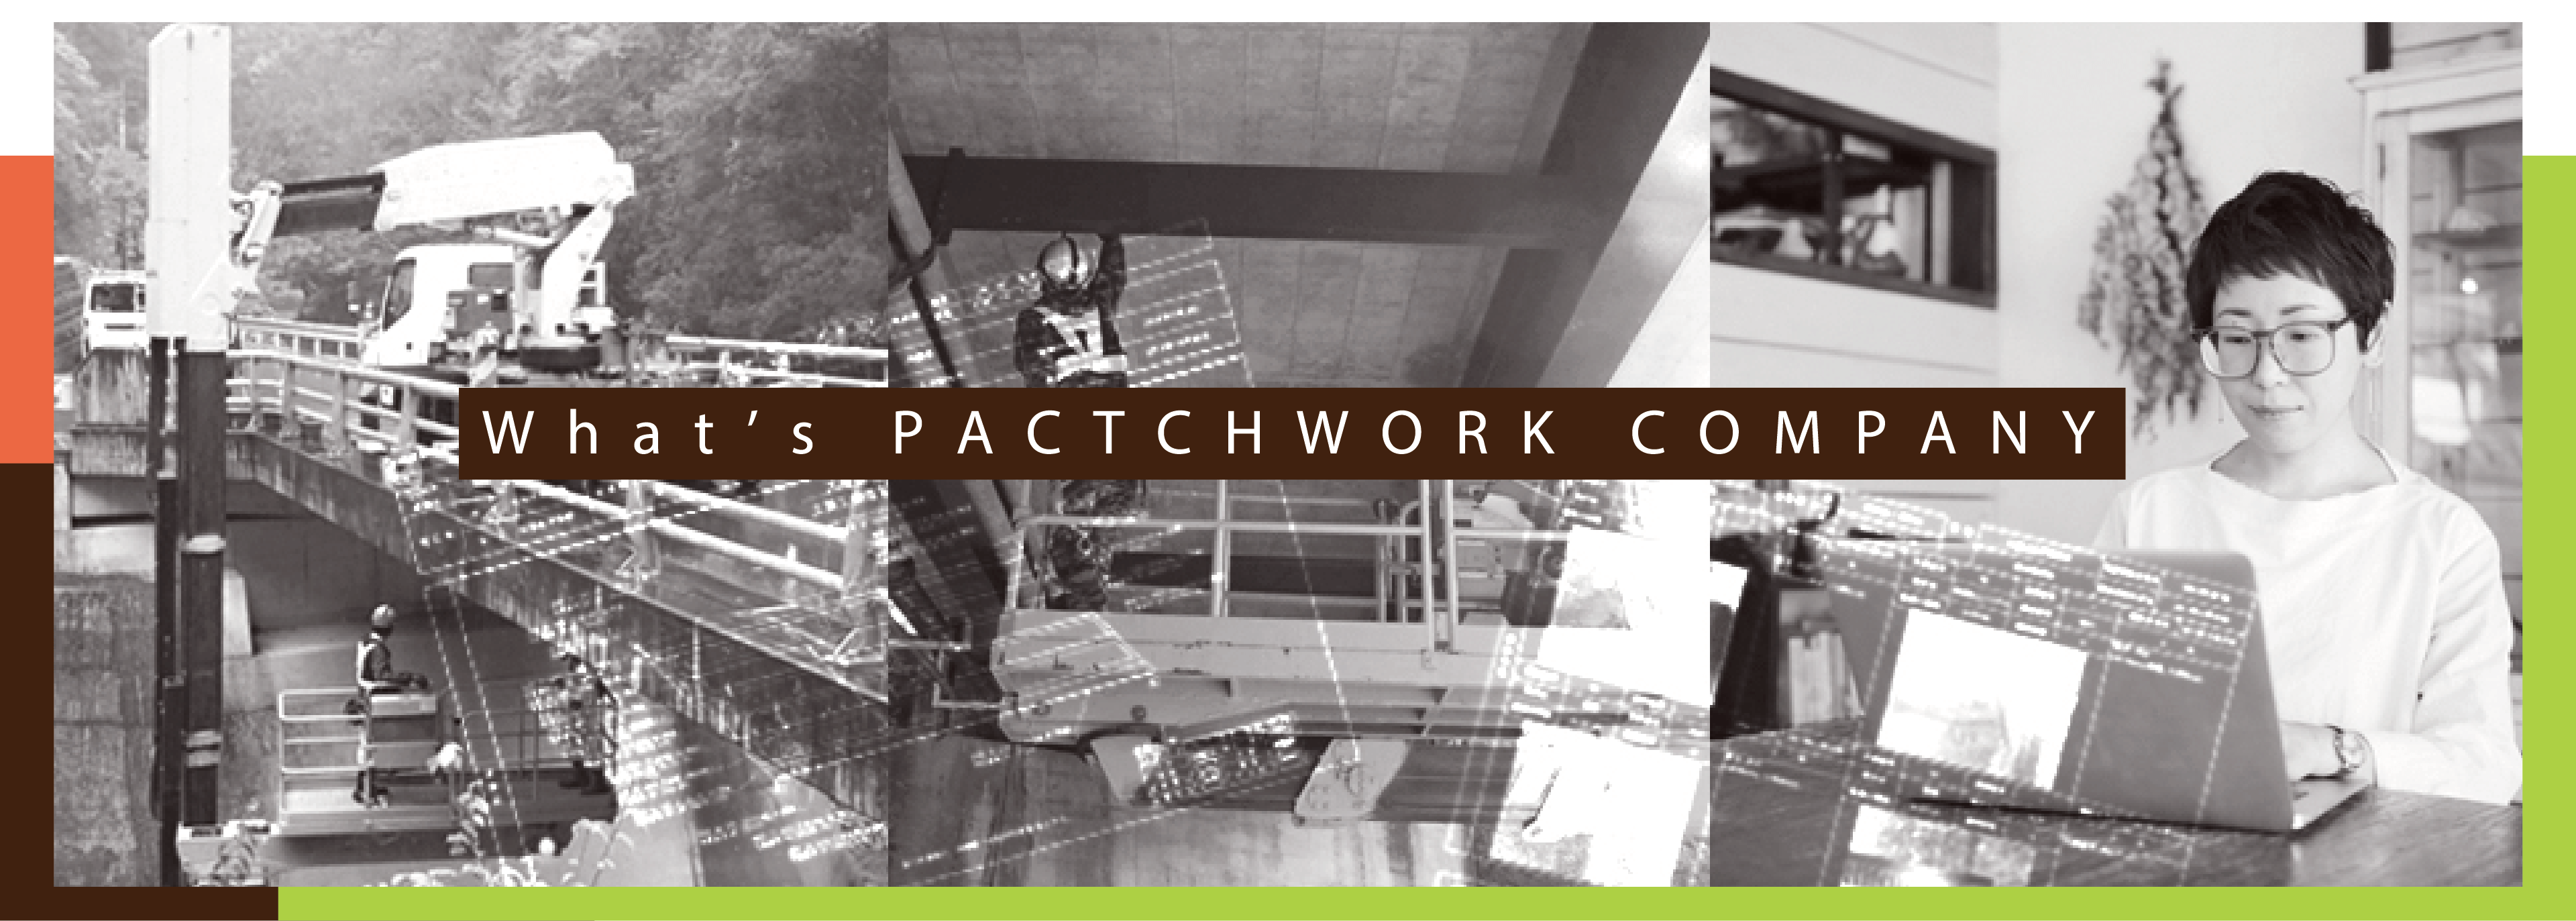 What's Patchwork Company